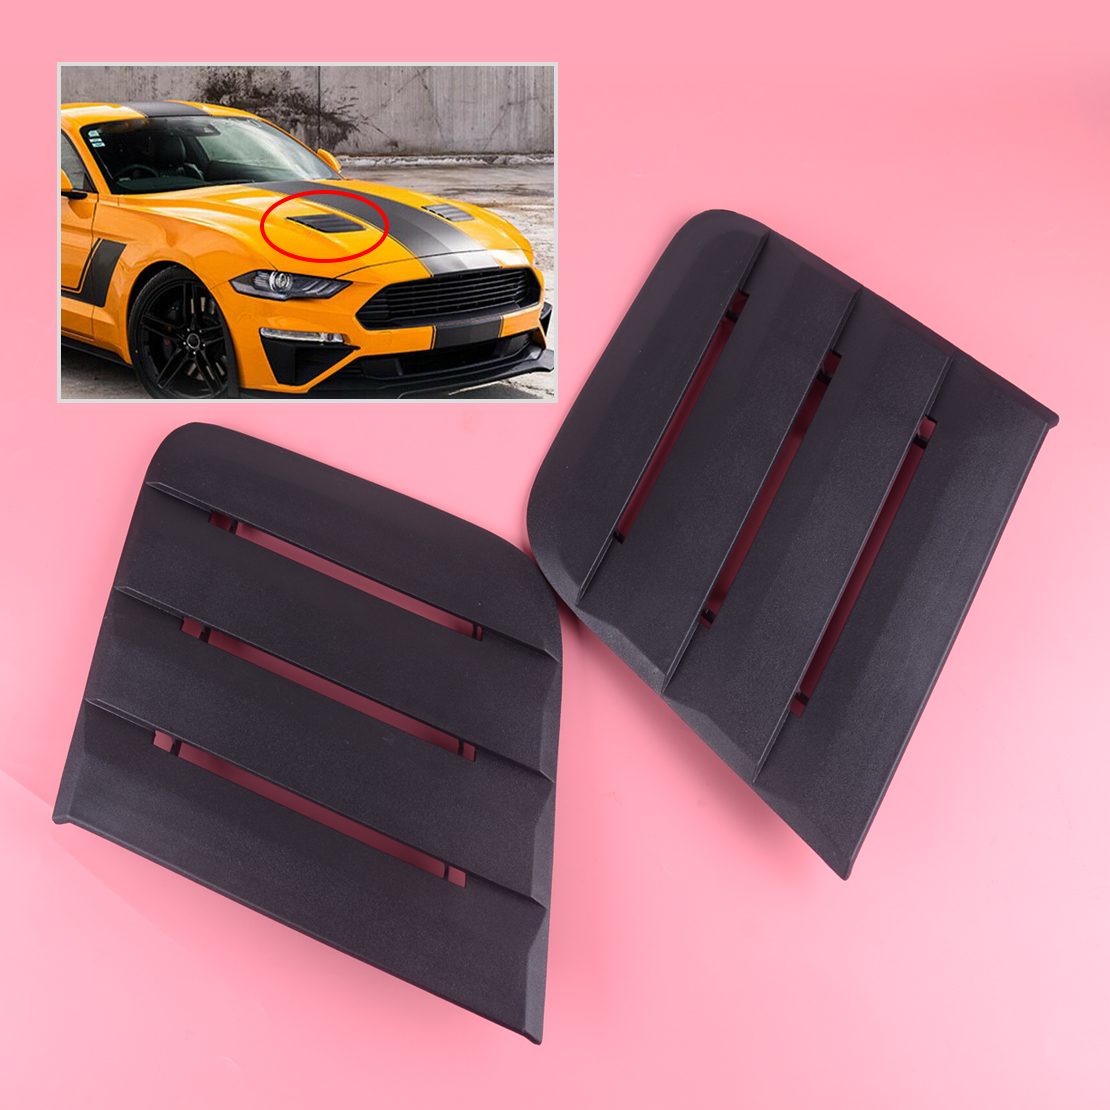 Matte Black Hood Vent Heat Extractors Cover For 2018-2019 Ford Mustang 422083